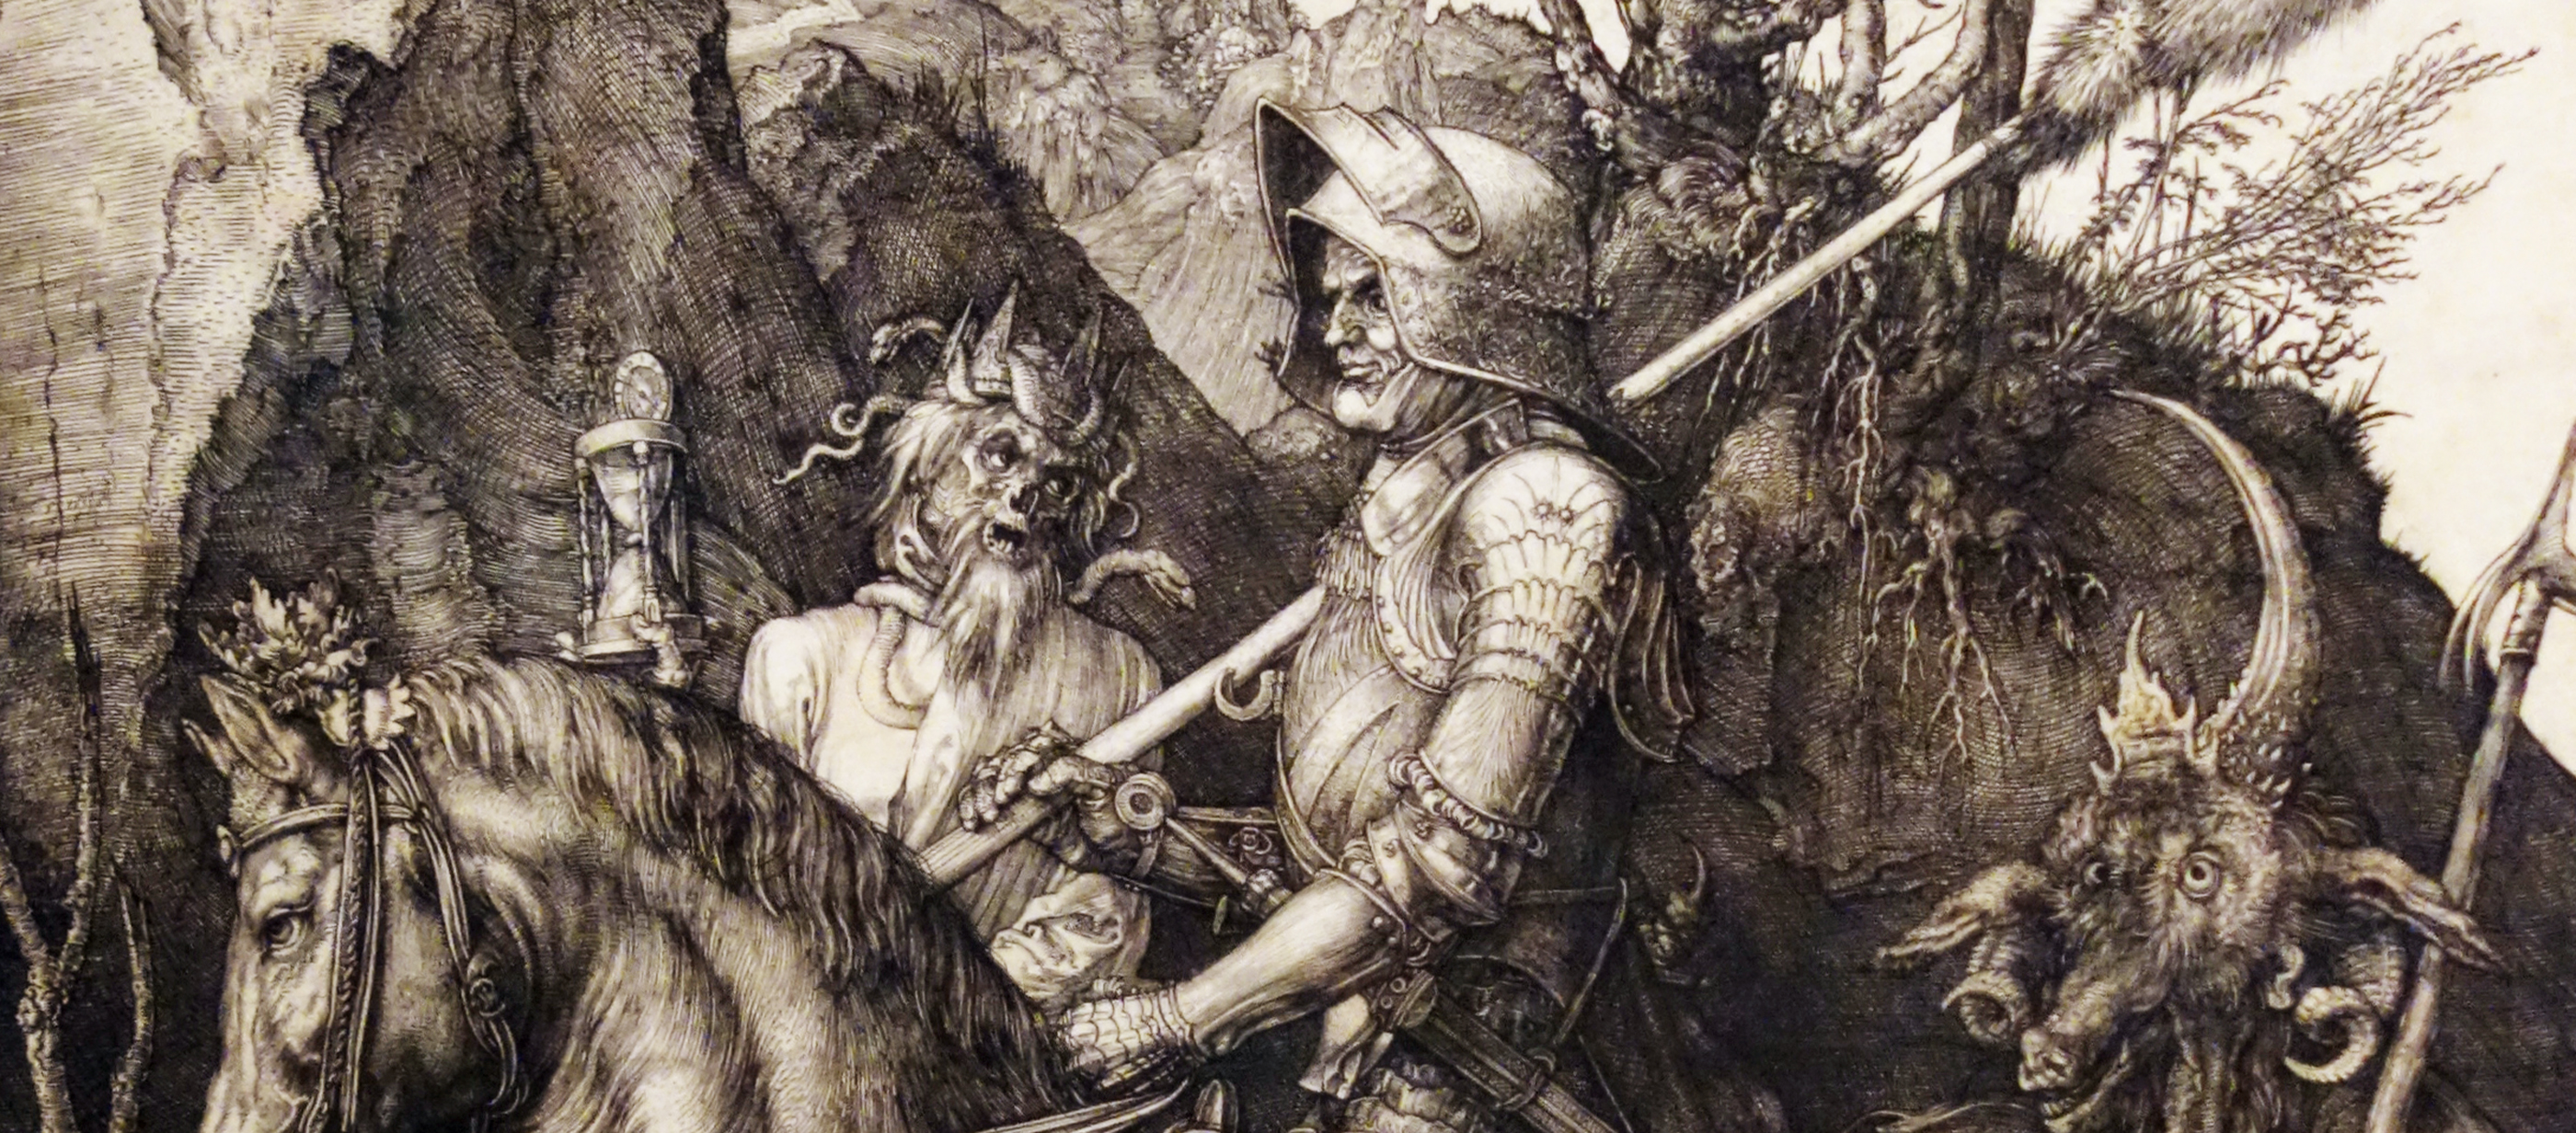 The Knight, Death, and the Devil, by Albrecht Dürer, 1513.